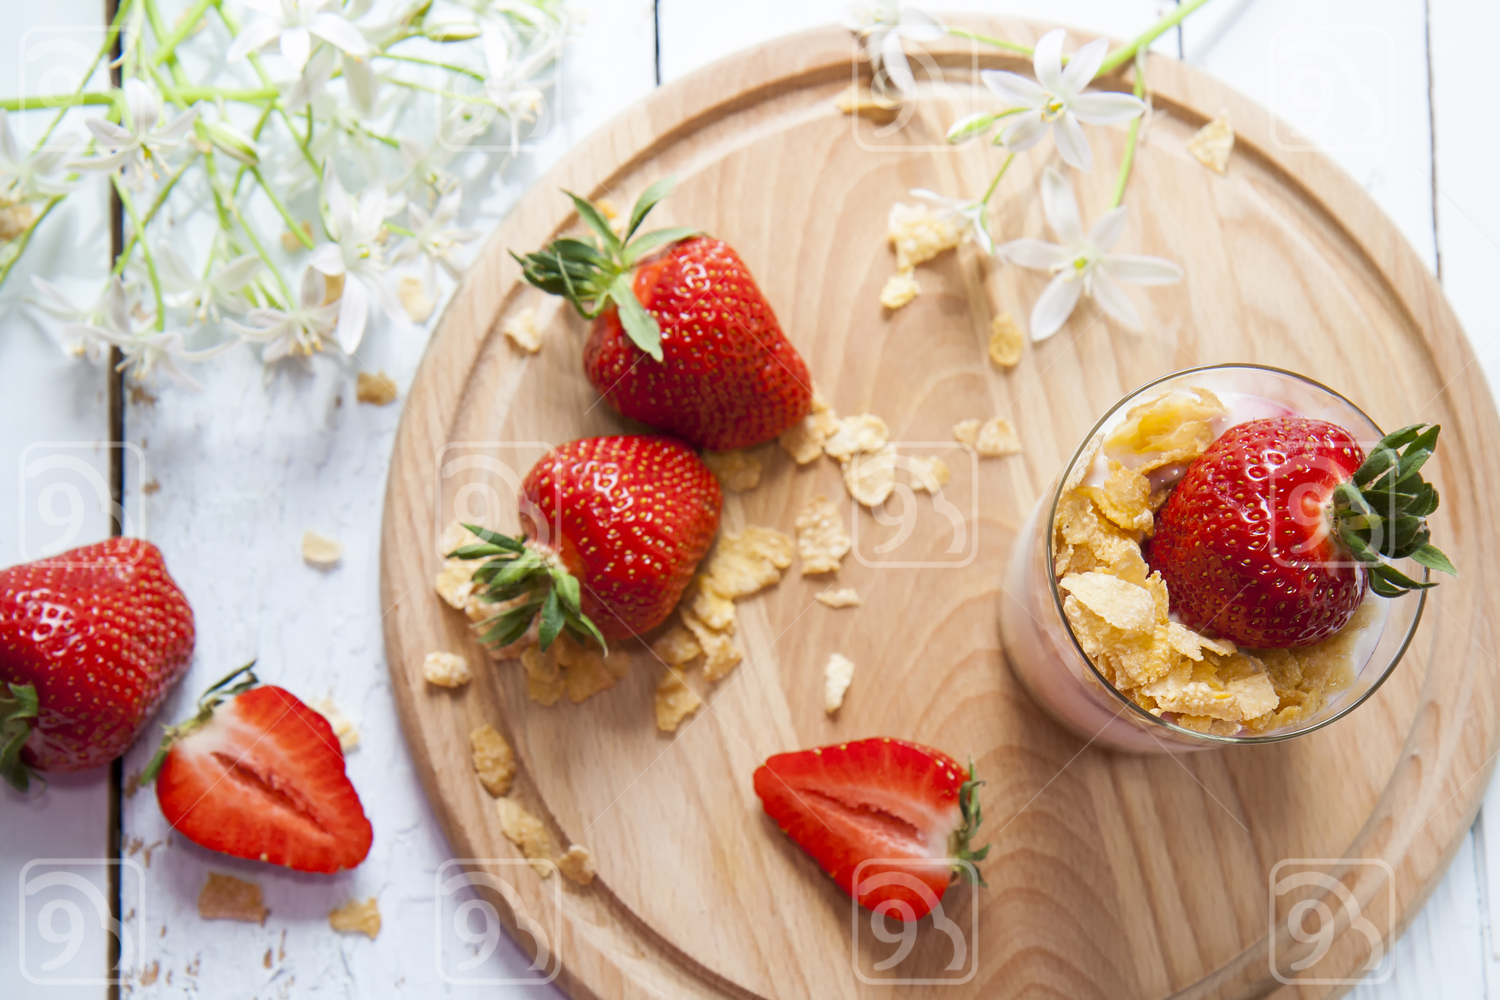 Yogurt with fresh strawberry and corn flakes